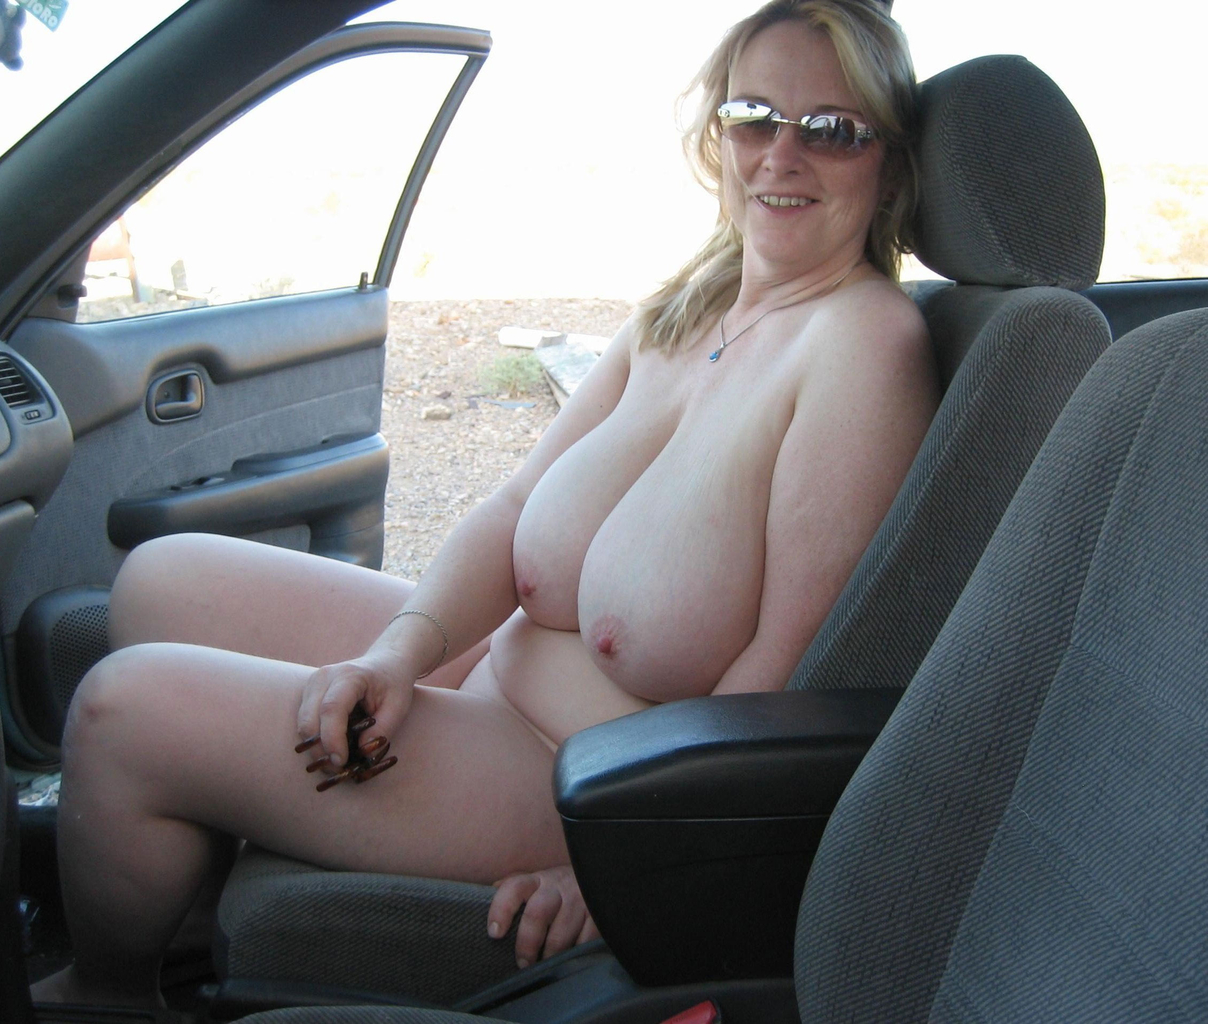 Ready Car showing tits in public excellent variant